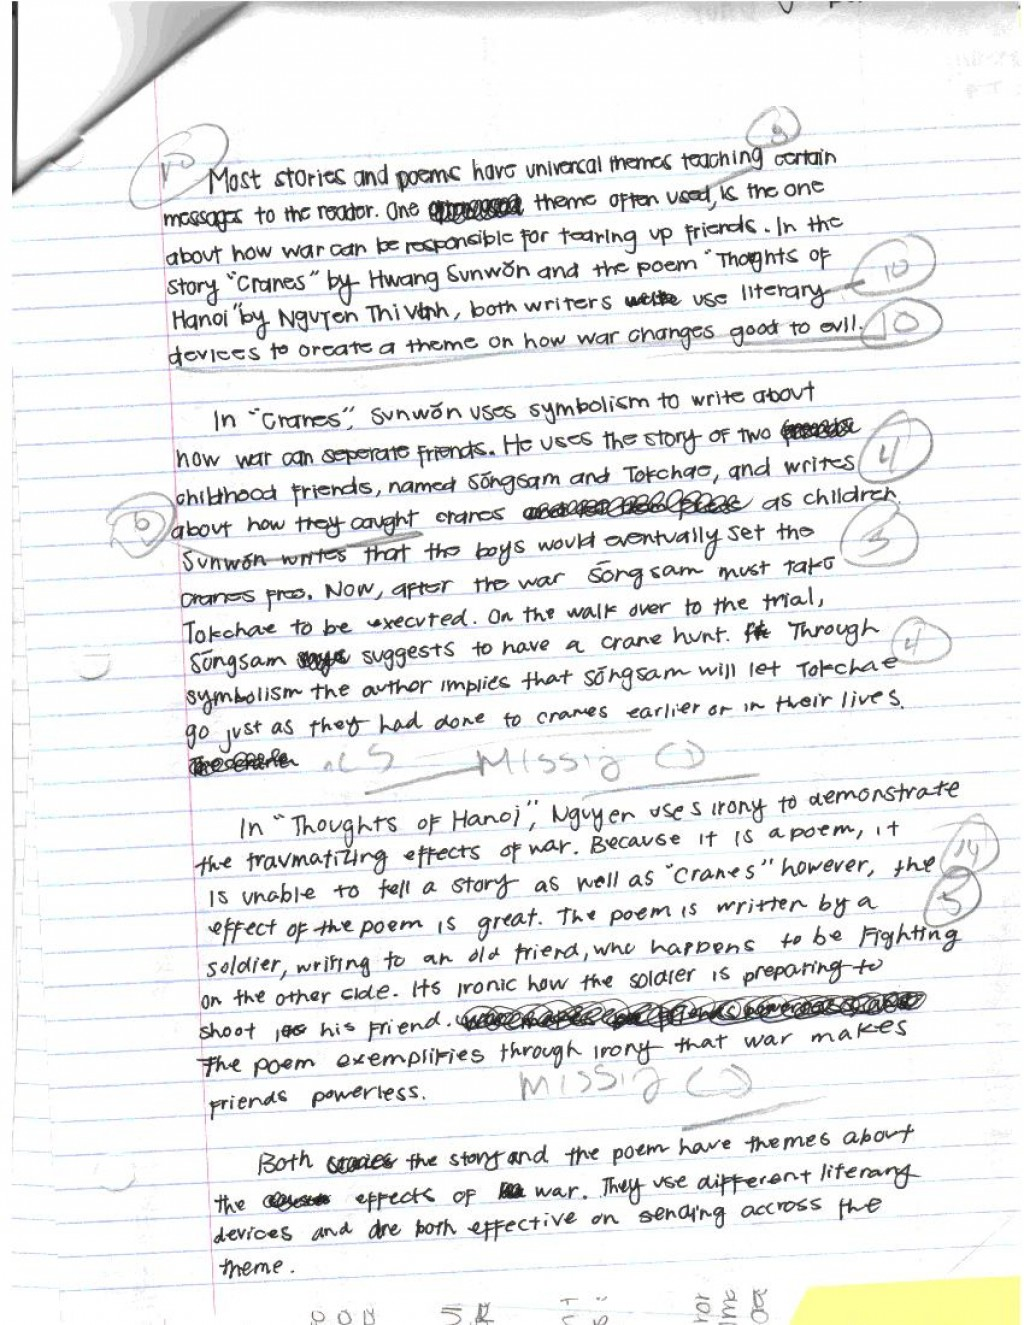 004 Myself Essay Unusual Describing Sample For Kids College Students Large